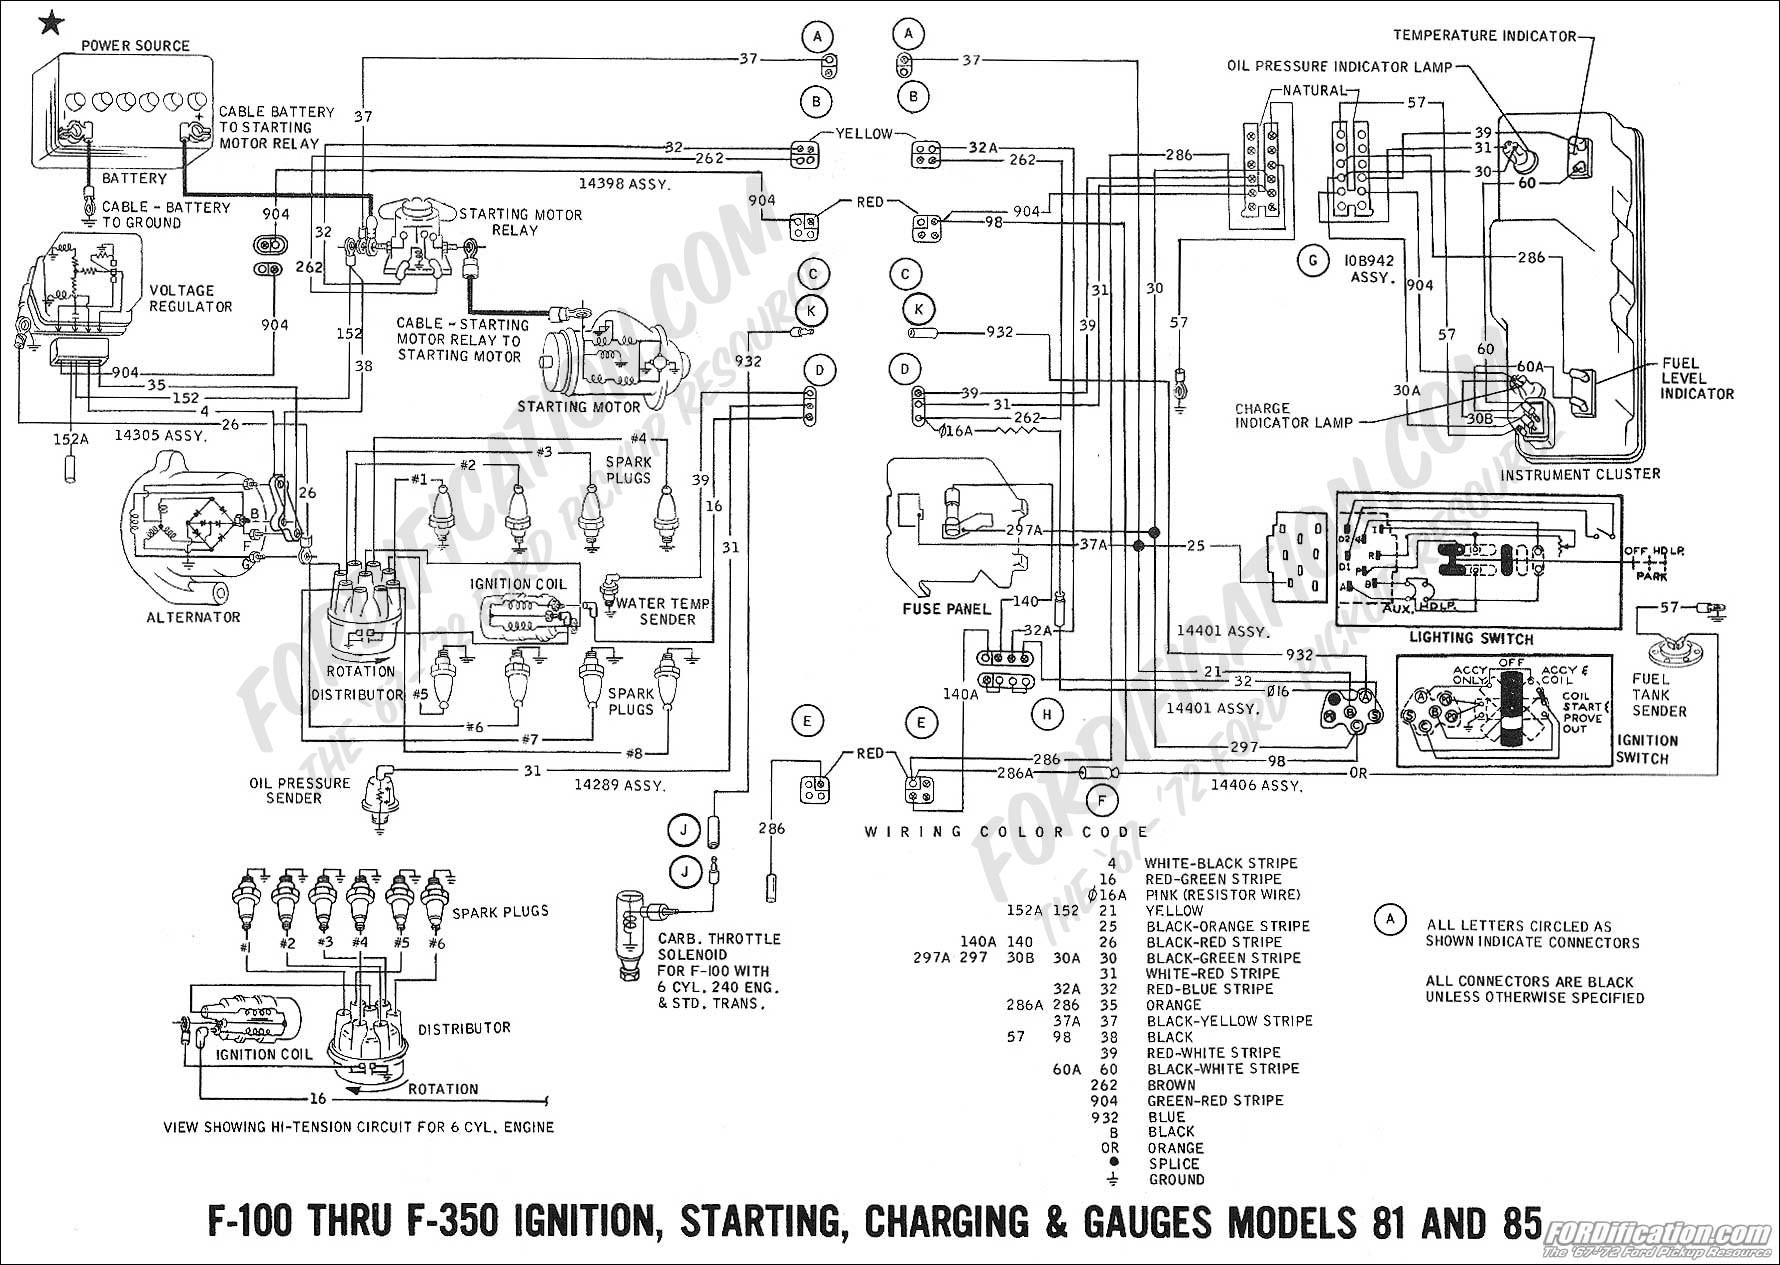 1970 Ford Truck Wiring Harness - Wiring Diagram 500  Gto Wiring Diagram on 1967 gto wiring diagram, 1970 oldsmobile wiring diagram, 1970 challenger wiring diagram, 1970 camaro wiring diagram, 1970 blazer wiring diagram, 1970 jeep wiring diagram, 1970 corvette wiring diagram, 68 gto dash wiring diagram, 1970 fairlane wiring diagram, 1969 gto wiring diagram, 2005 gto wiring diagram, 1966 gto wiring diagram, 1970 gto oil filter, 1964 gto wiring diagram, 1970 mustang wiring diagram, 2004 gto wiring diagram, 1971 gto wiring diagram, 1970 malibu wiring diagram, 1965 gto wiring diagram, 1970 nova wiring diagram,